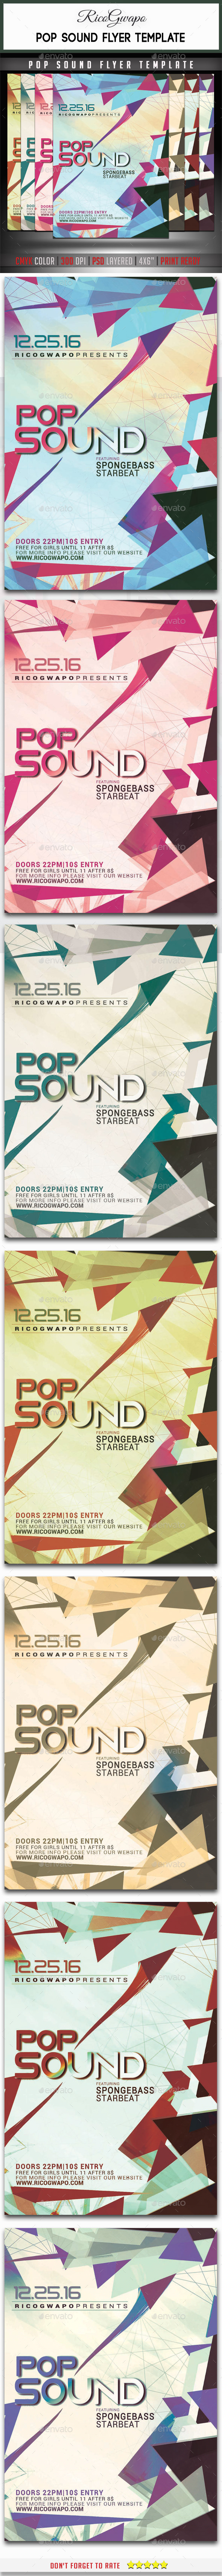 Pop Sound Flyer Template - Events Flyers